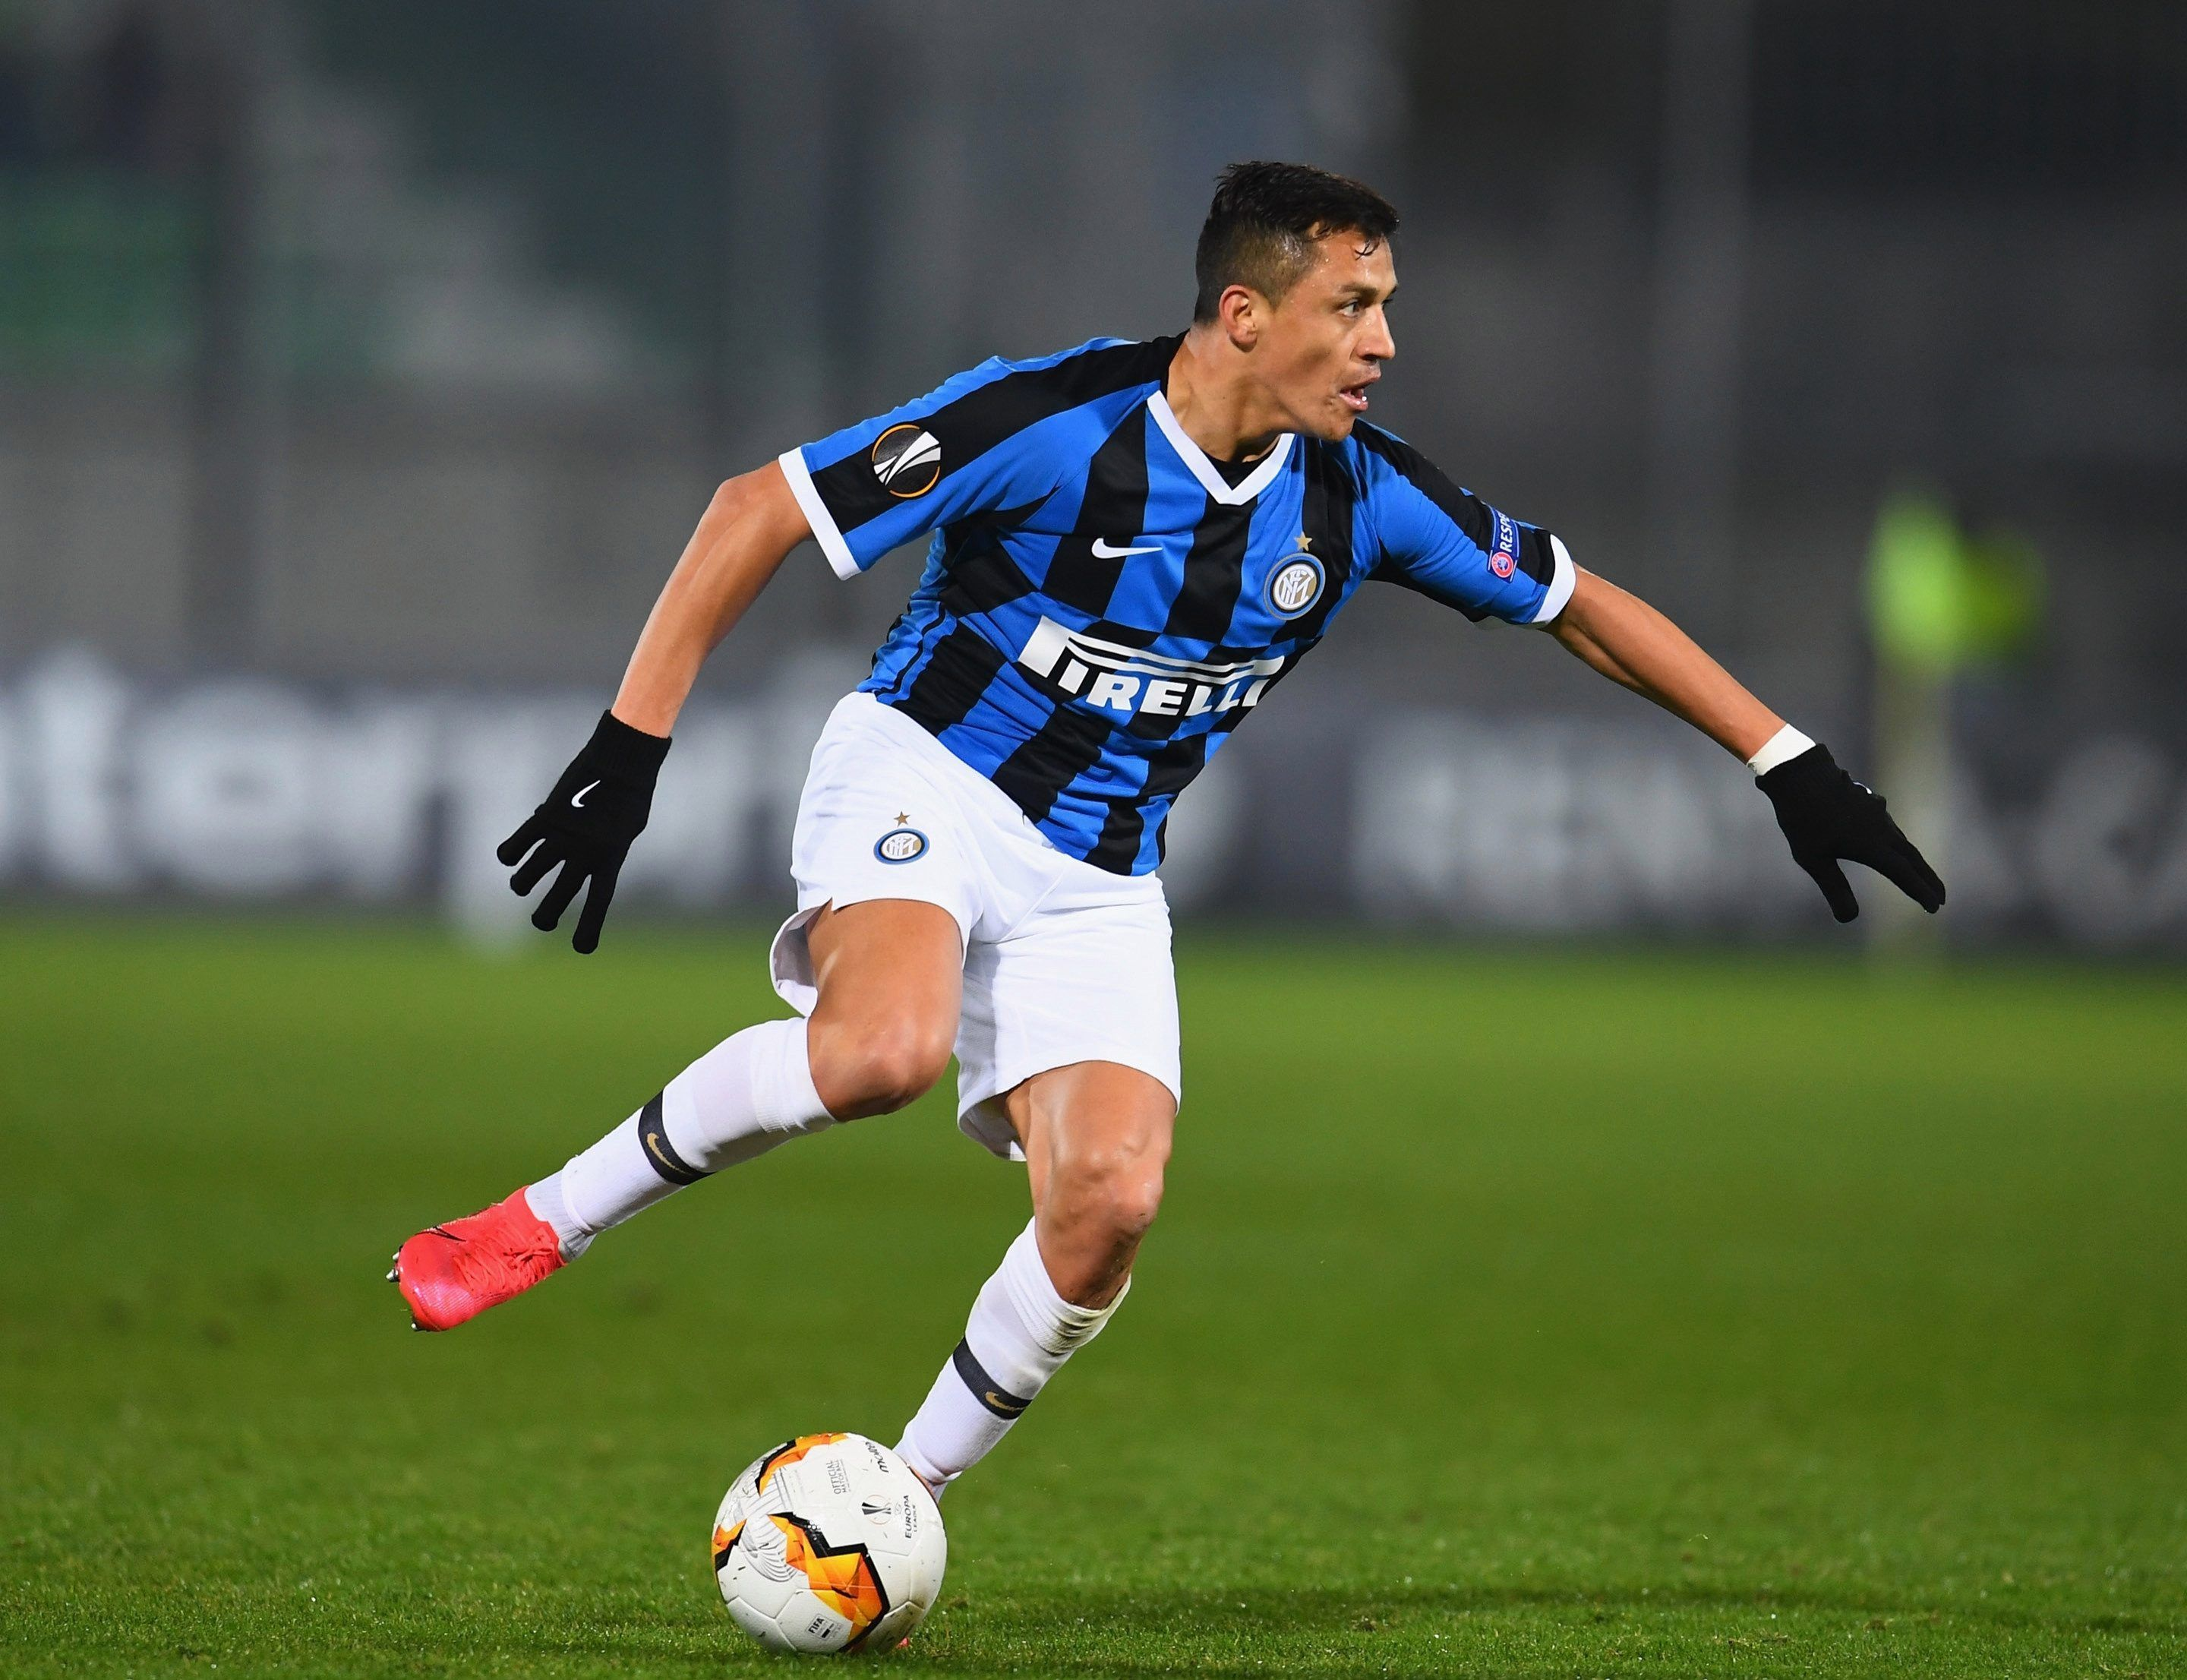 Inter Milan set to sign Alexis Sanchez on a permanent